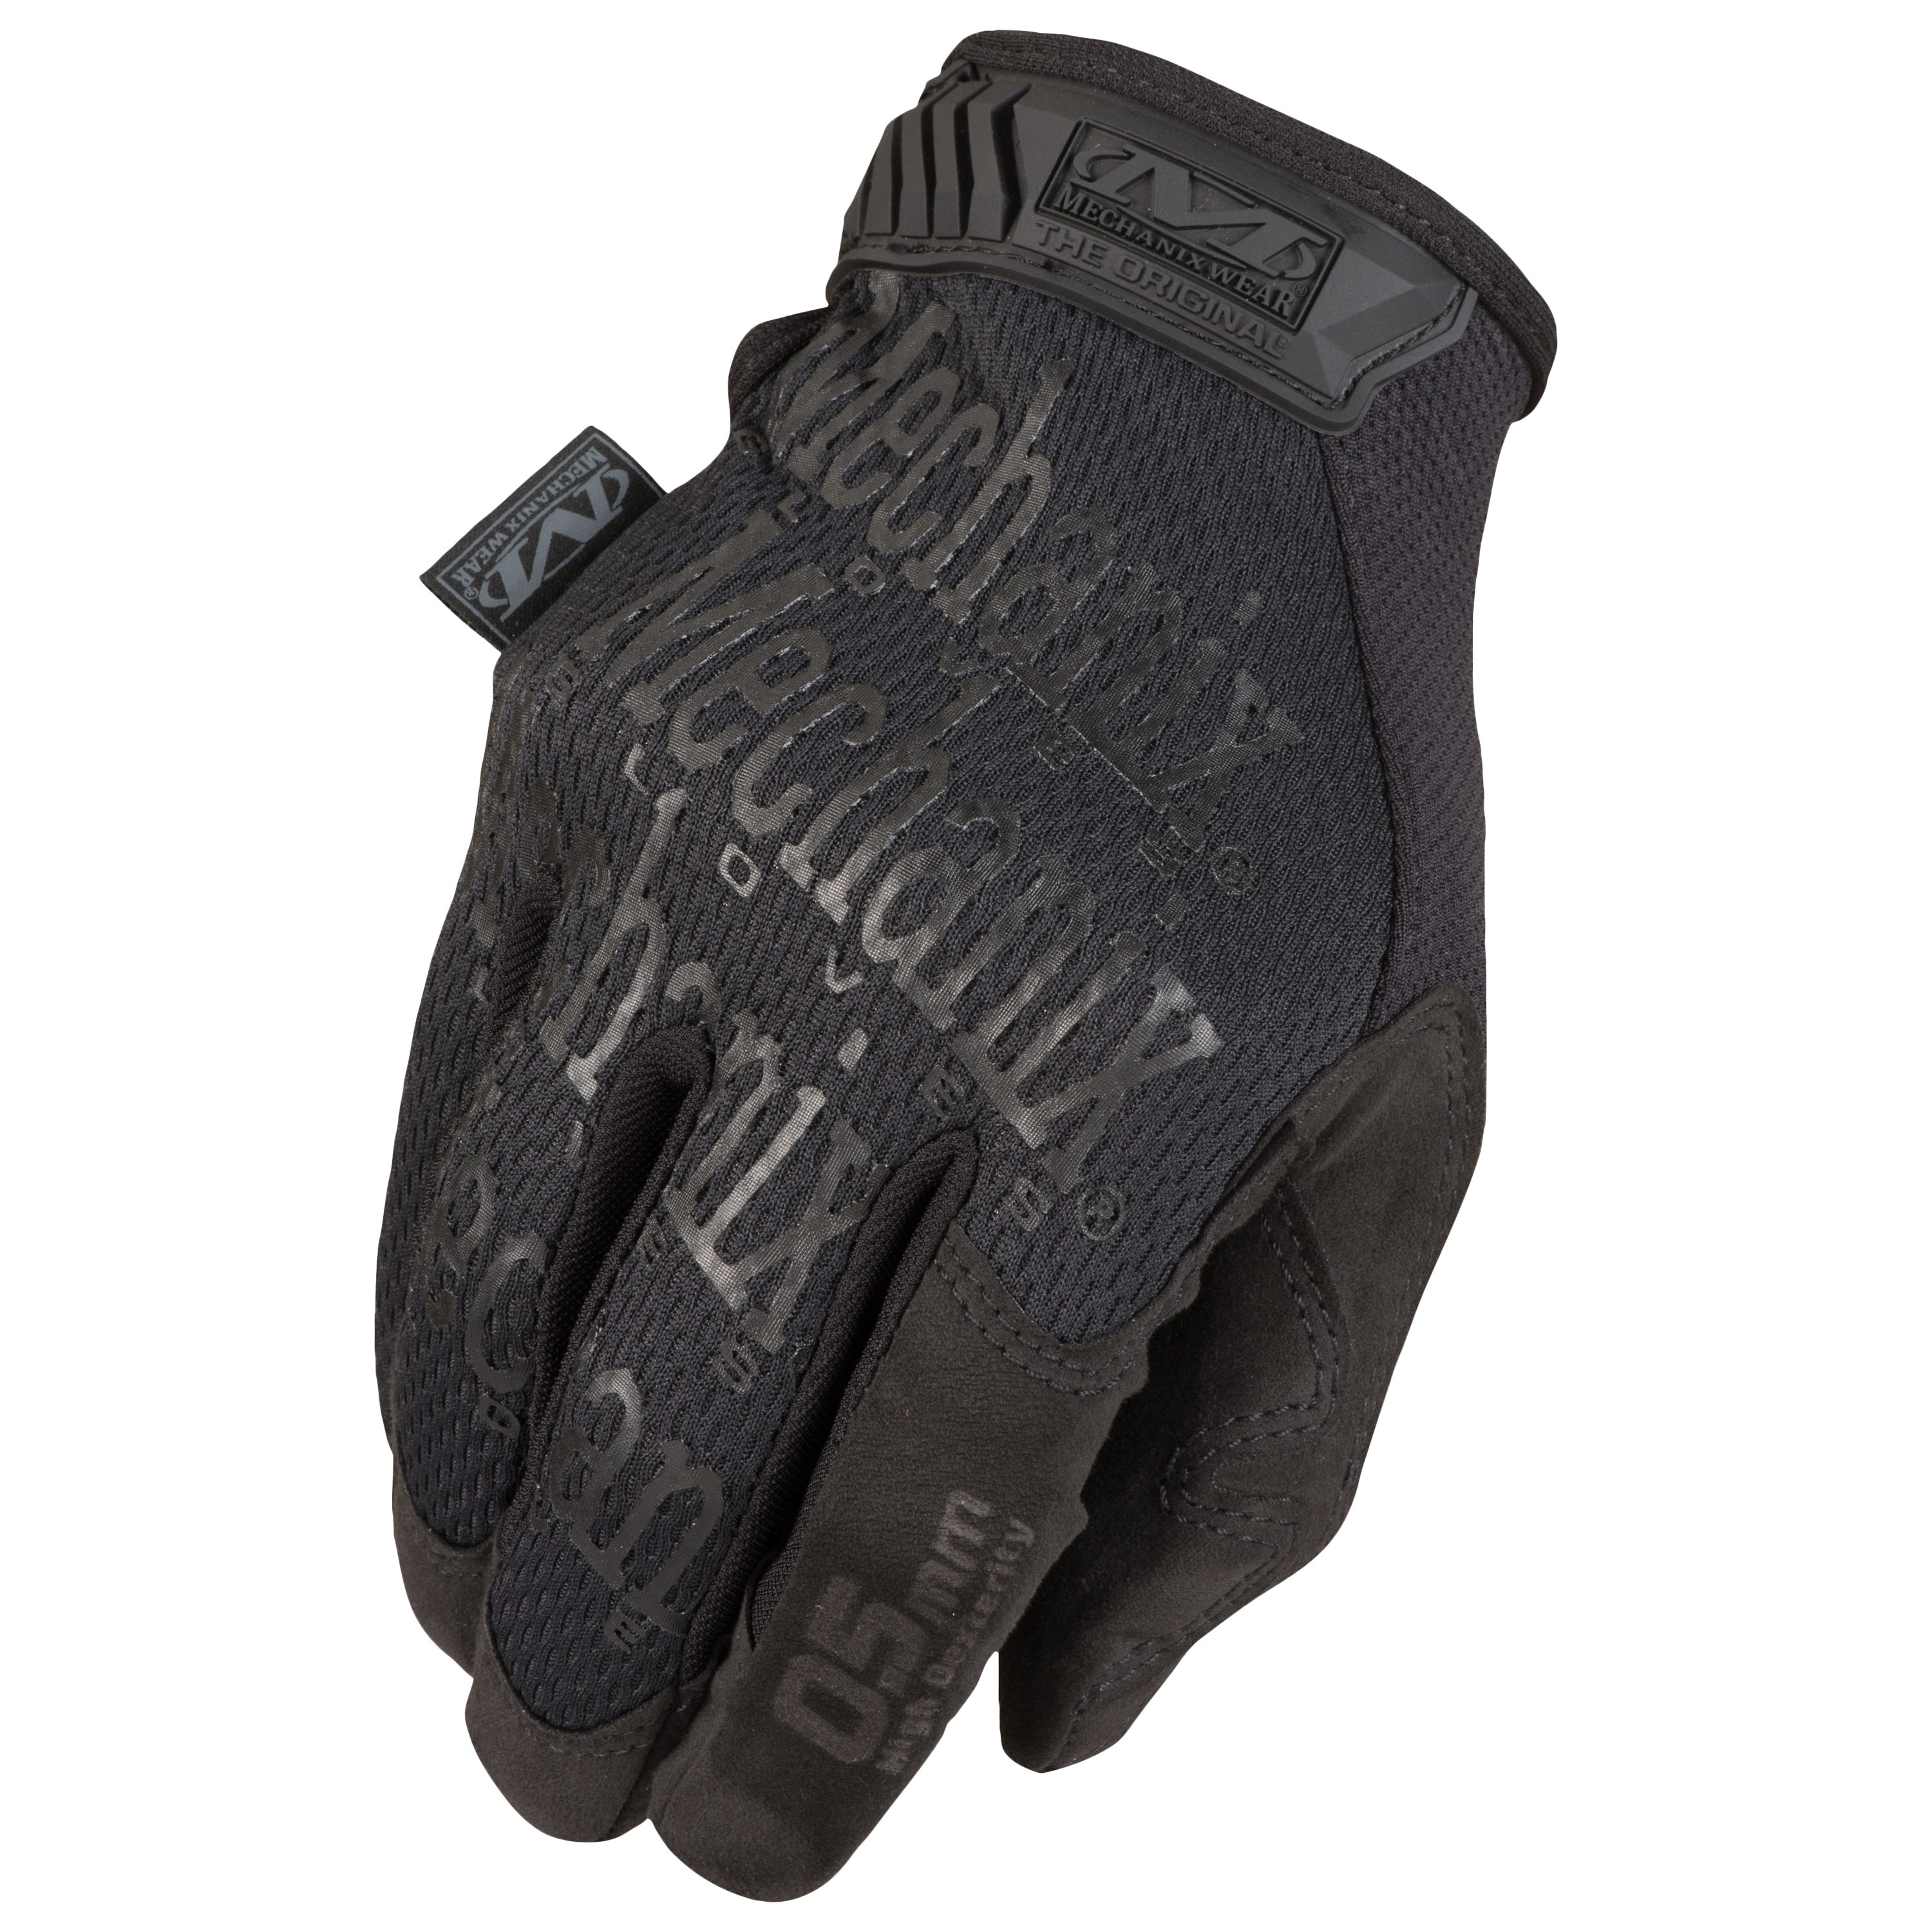 Mechanix Gloves The Original Women 0.5 mm Covert